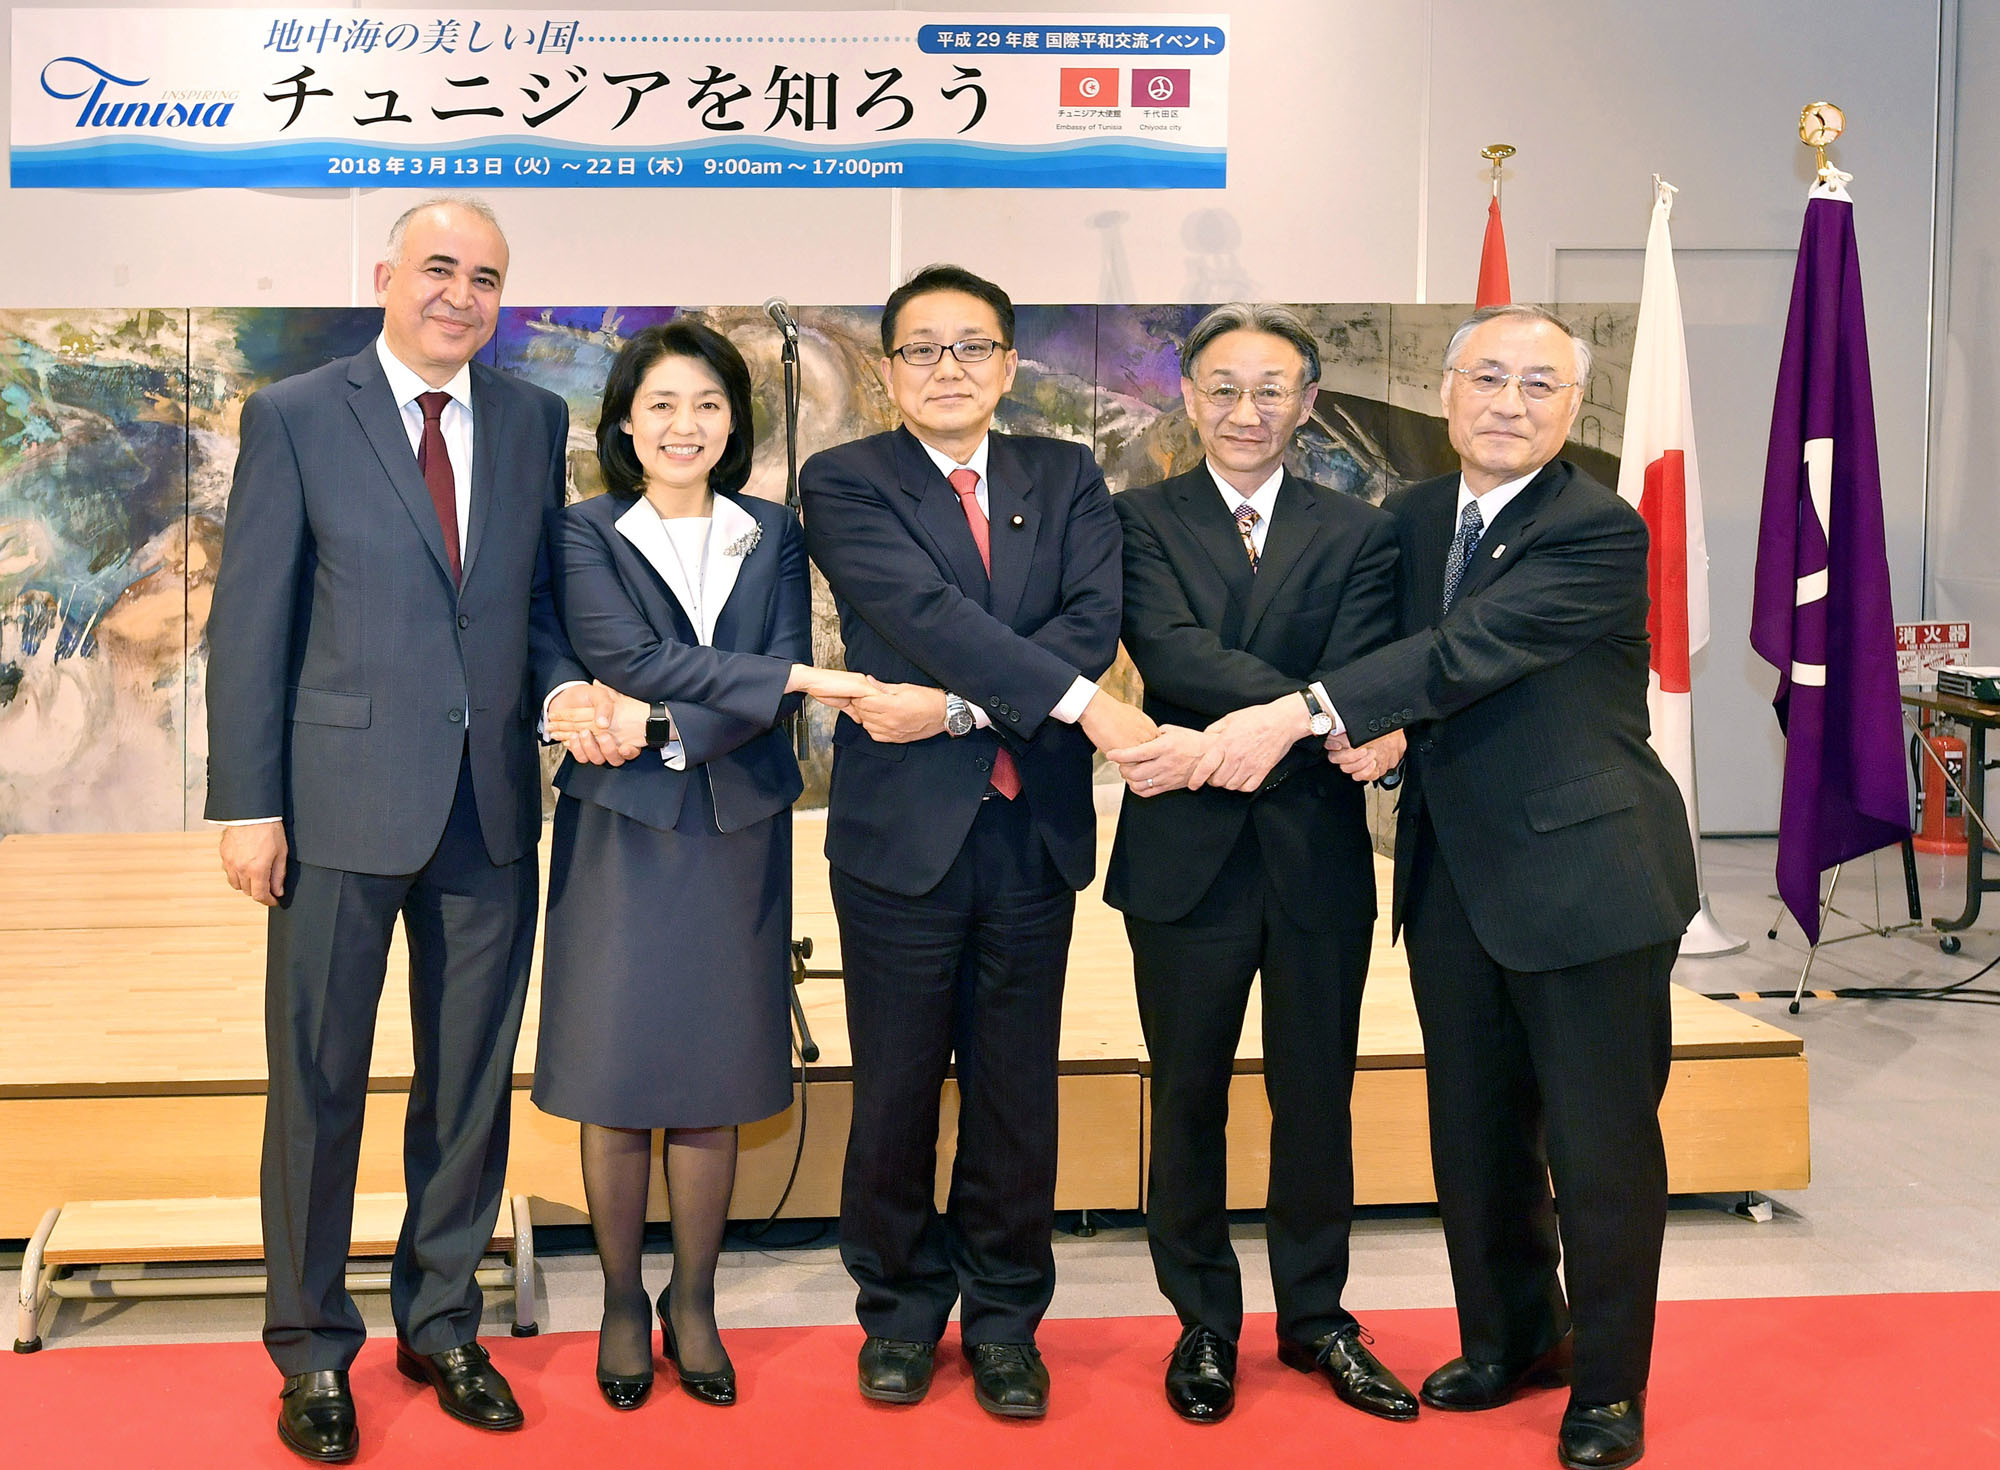 "Japanese and Tunisian artists pose for a photograph during the opening ceremony of an exhibition titled ""Inspiring Tunisia"" at Chiyoda Kumin Hall on March 12. Pictured (from left) are Tunisian Ambassador Kais Darragi; Foreign Minister Taro Kono's wife, Kaori; Kiyoshi Ejima, chairman of the Special Committee on Reconstruction after the Great East Japan Earthquake and member of the Japan-Tunisia Parliamentary Committee; artist Hideyuki Ozawa; and Chiyoda Mayor Masami Ishikawa. The exhibition is on display through March 22. 